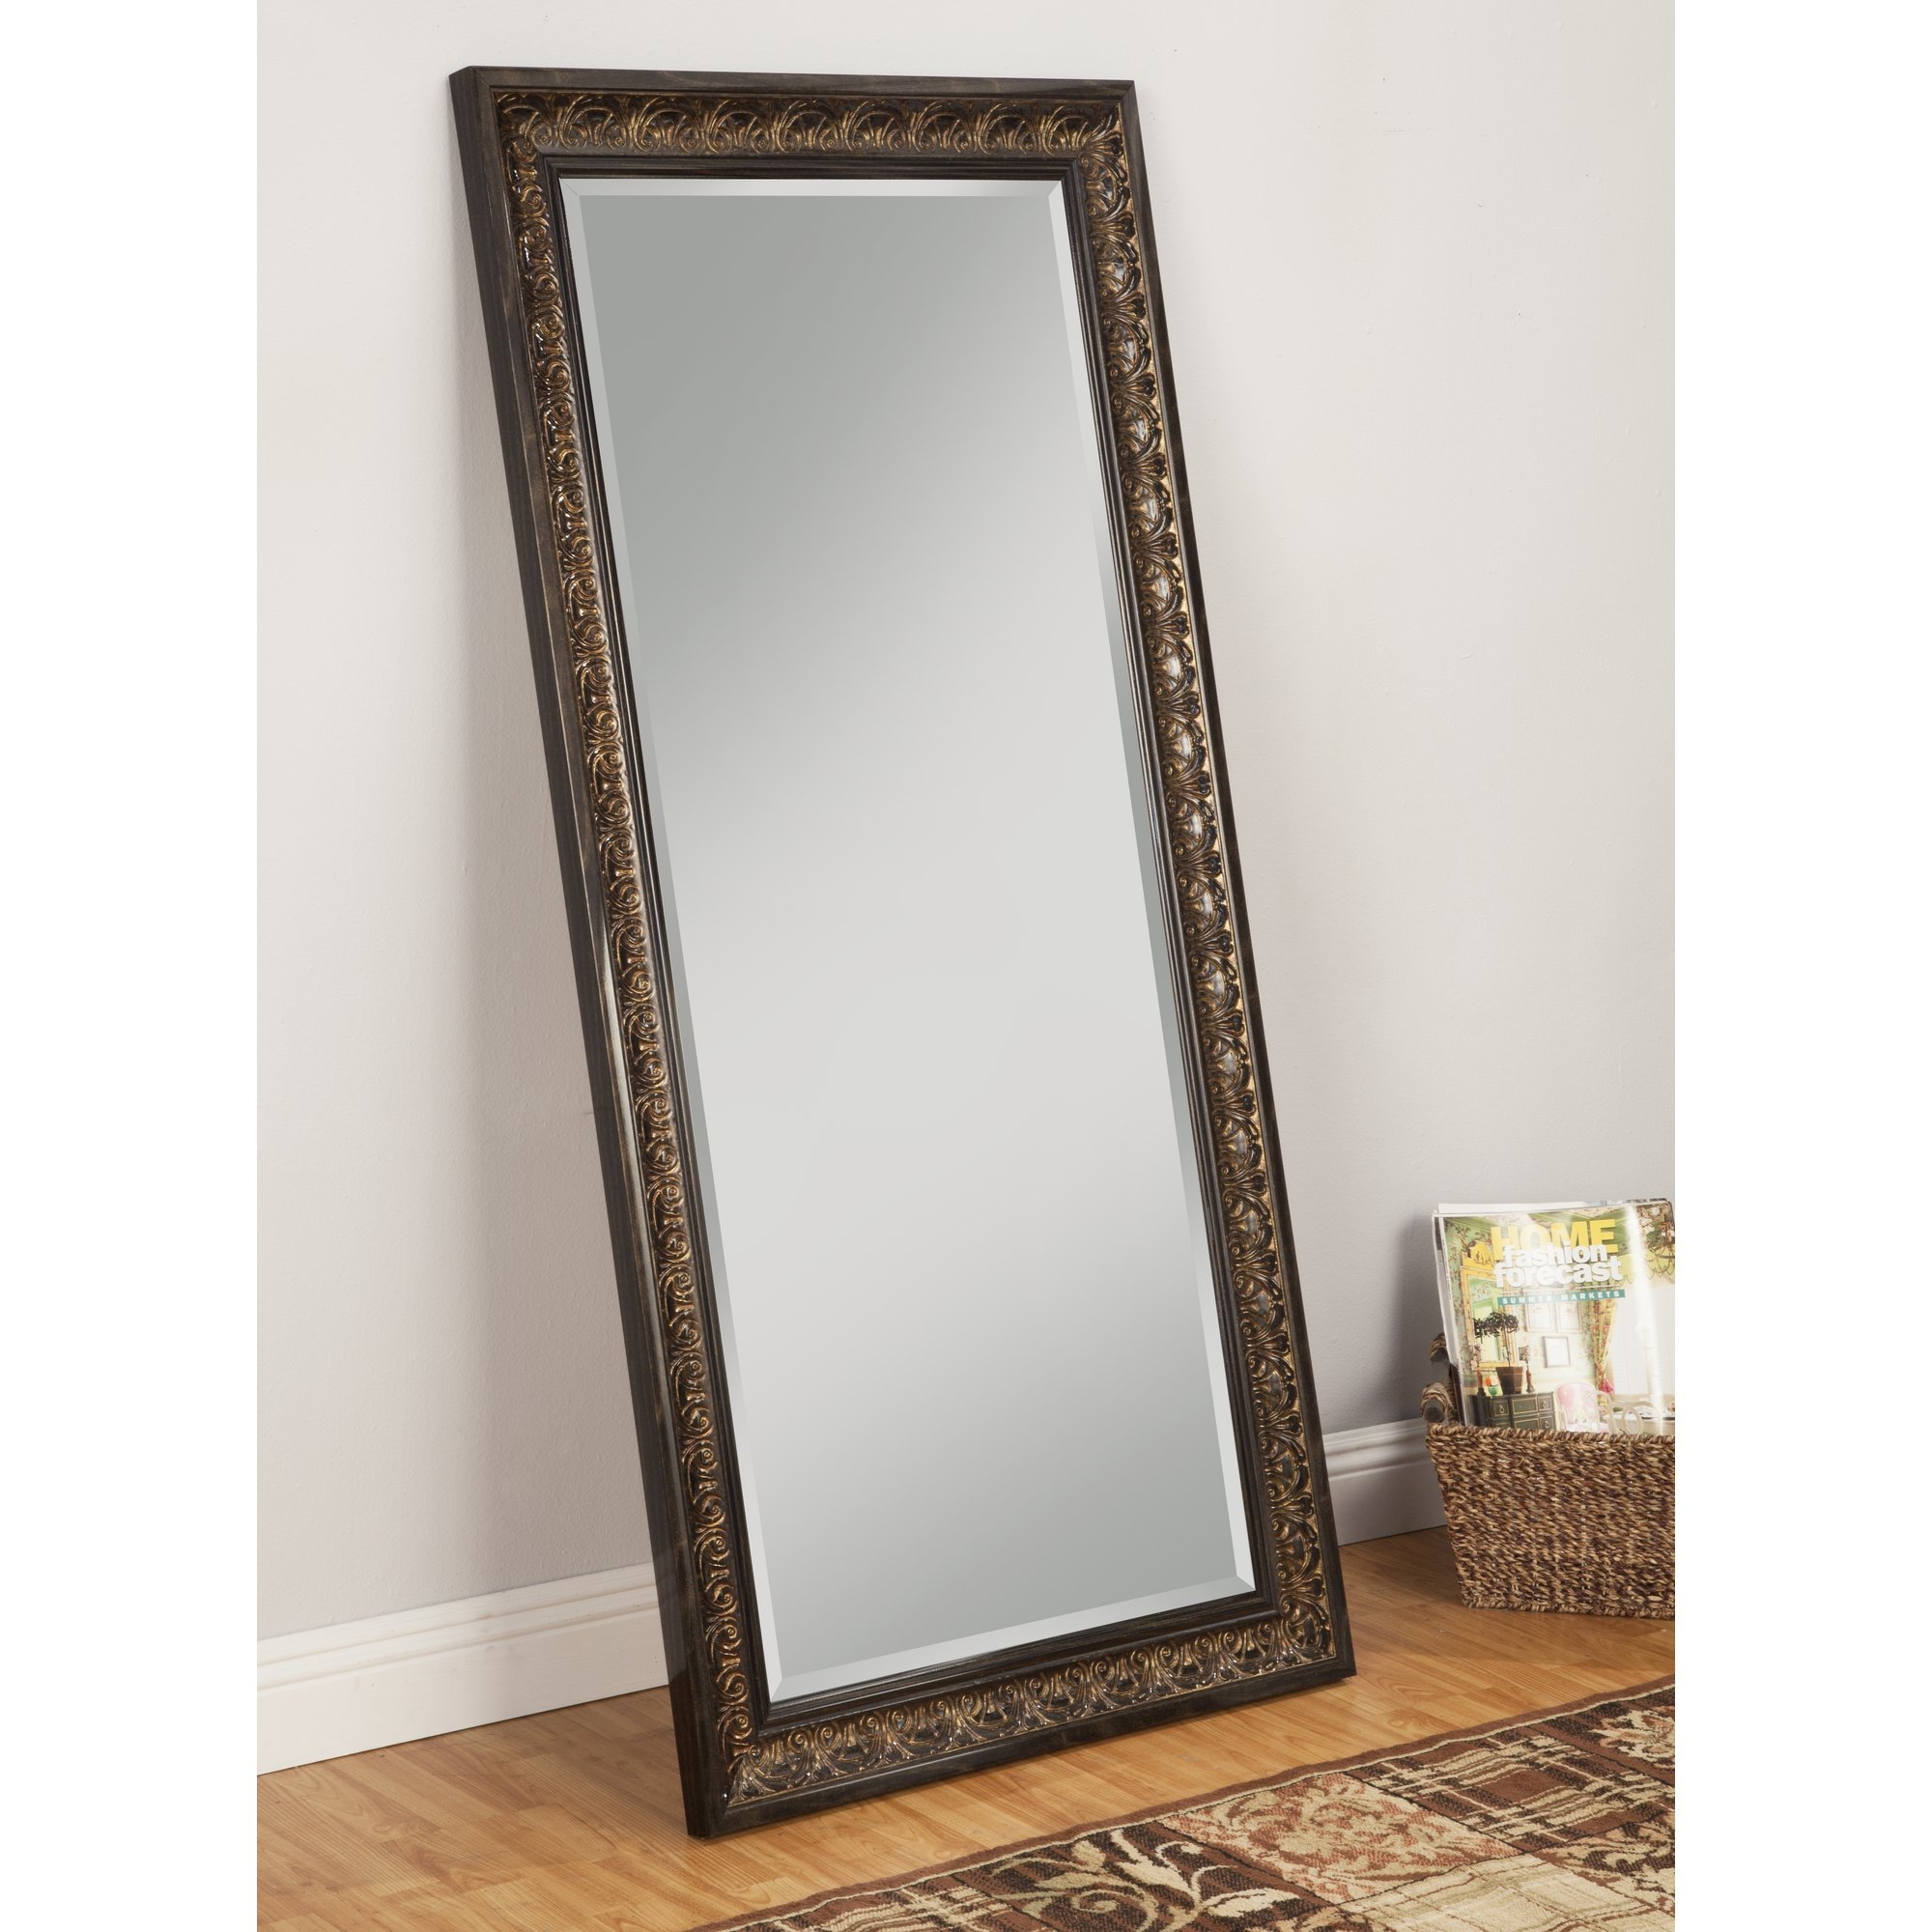 Floor Mirrors Youll Love Wayfair Throughout Big Standing Mirror (Image 4 of 15)